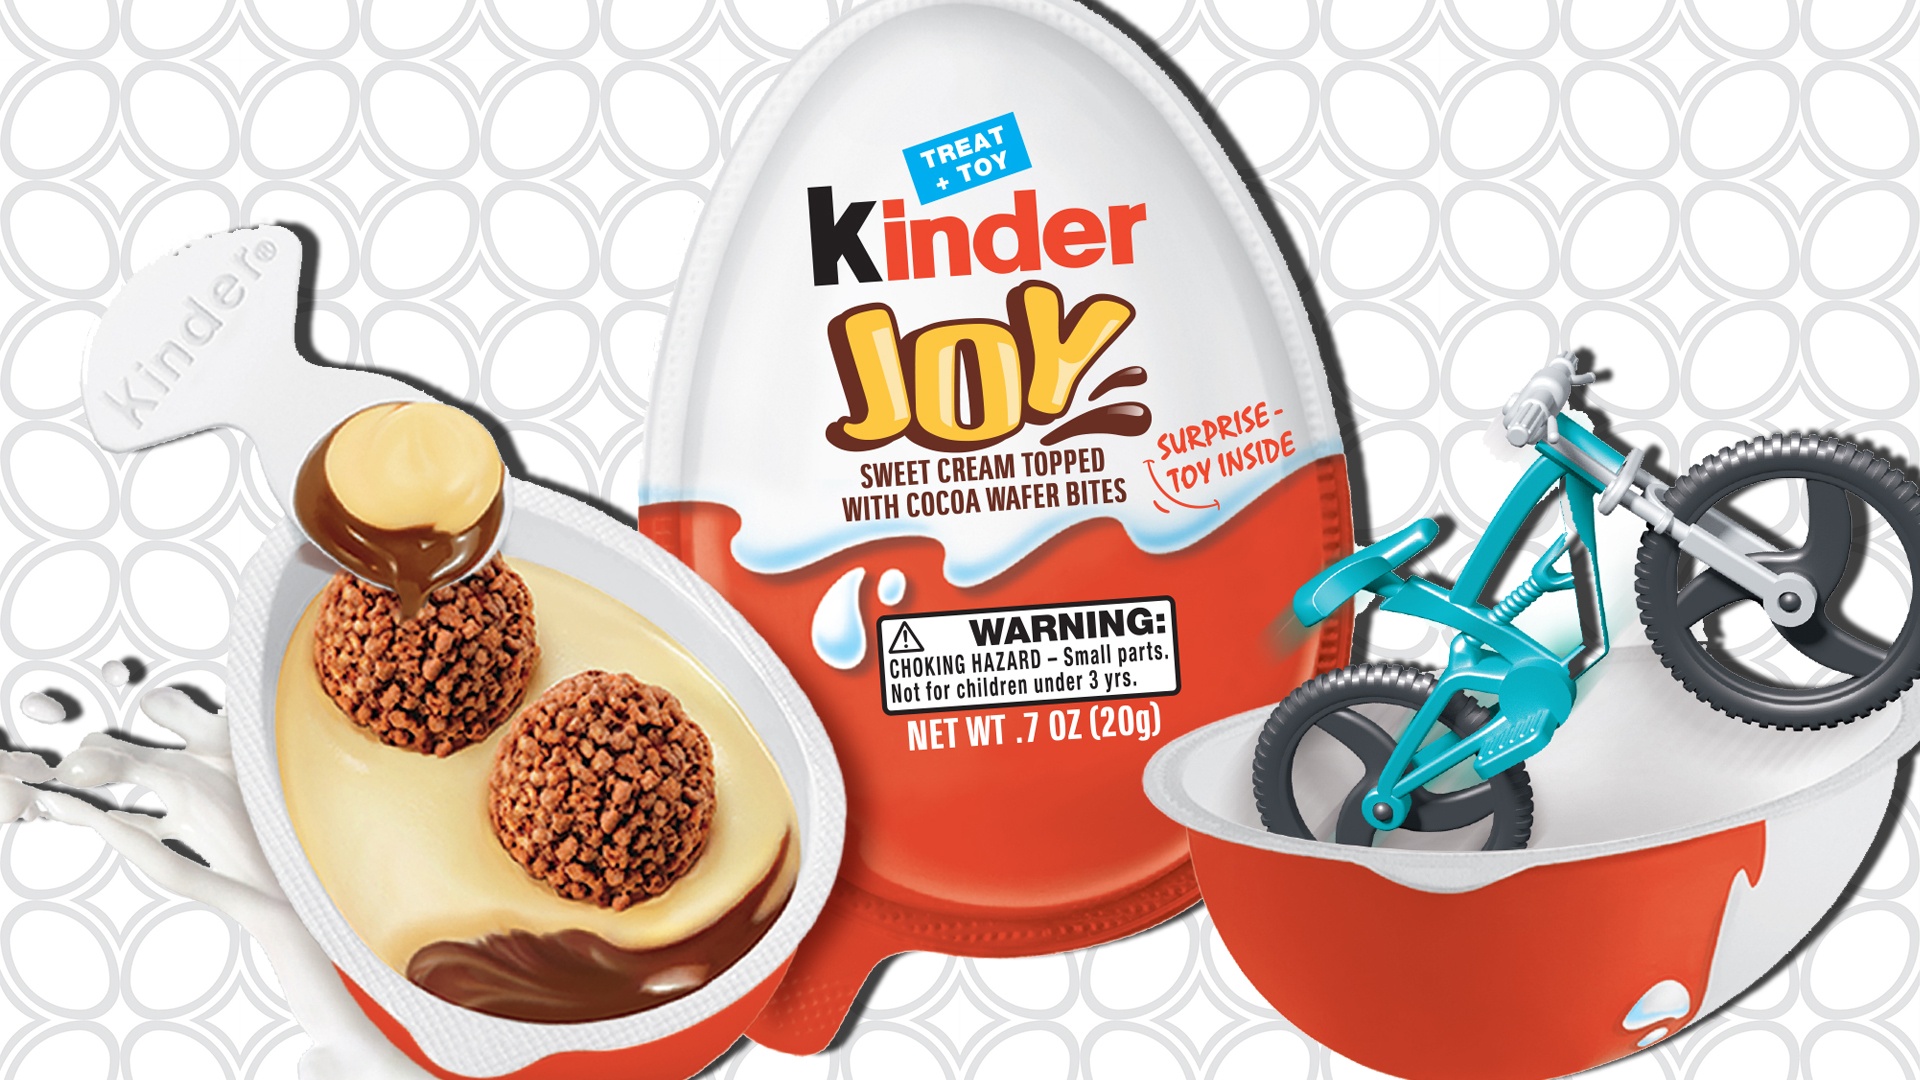 Car Toys Federal Way: Kinder Joy Chocolate Eggs Are Coming To The US